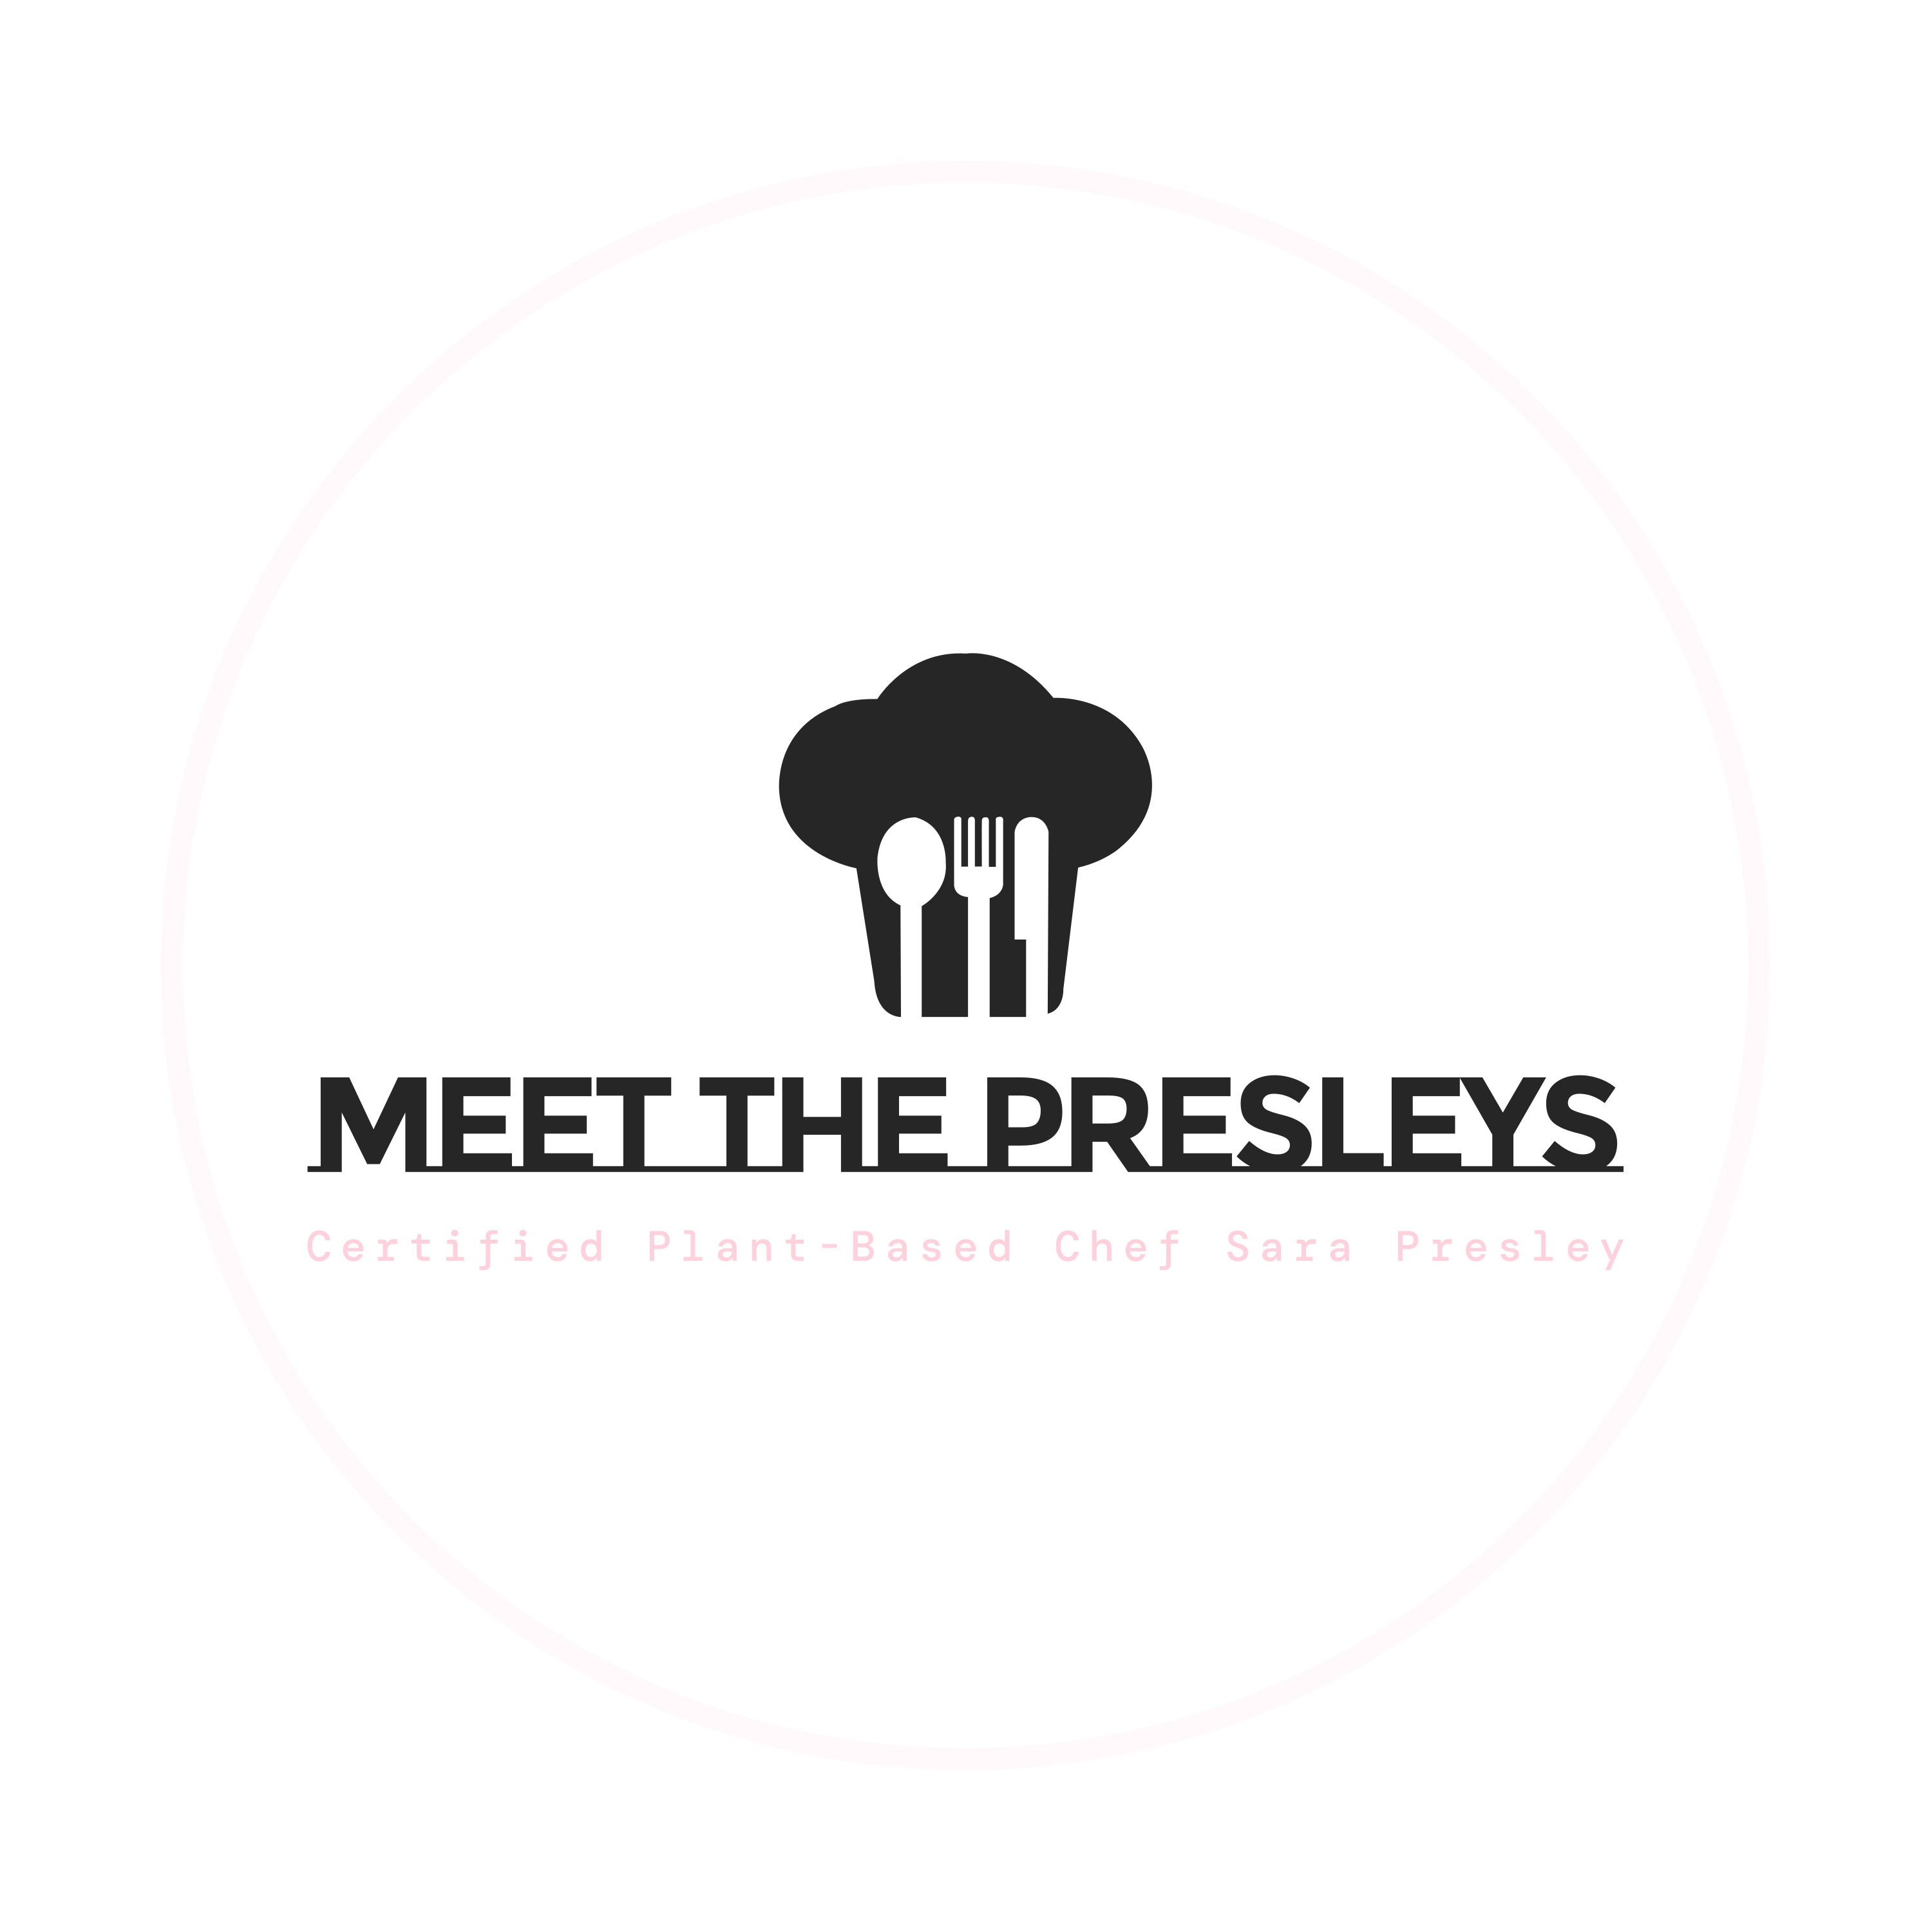 Meet The Presleys